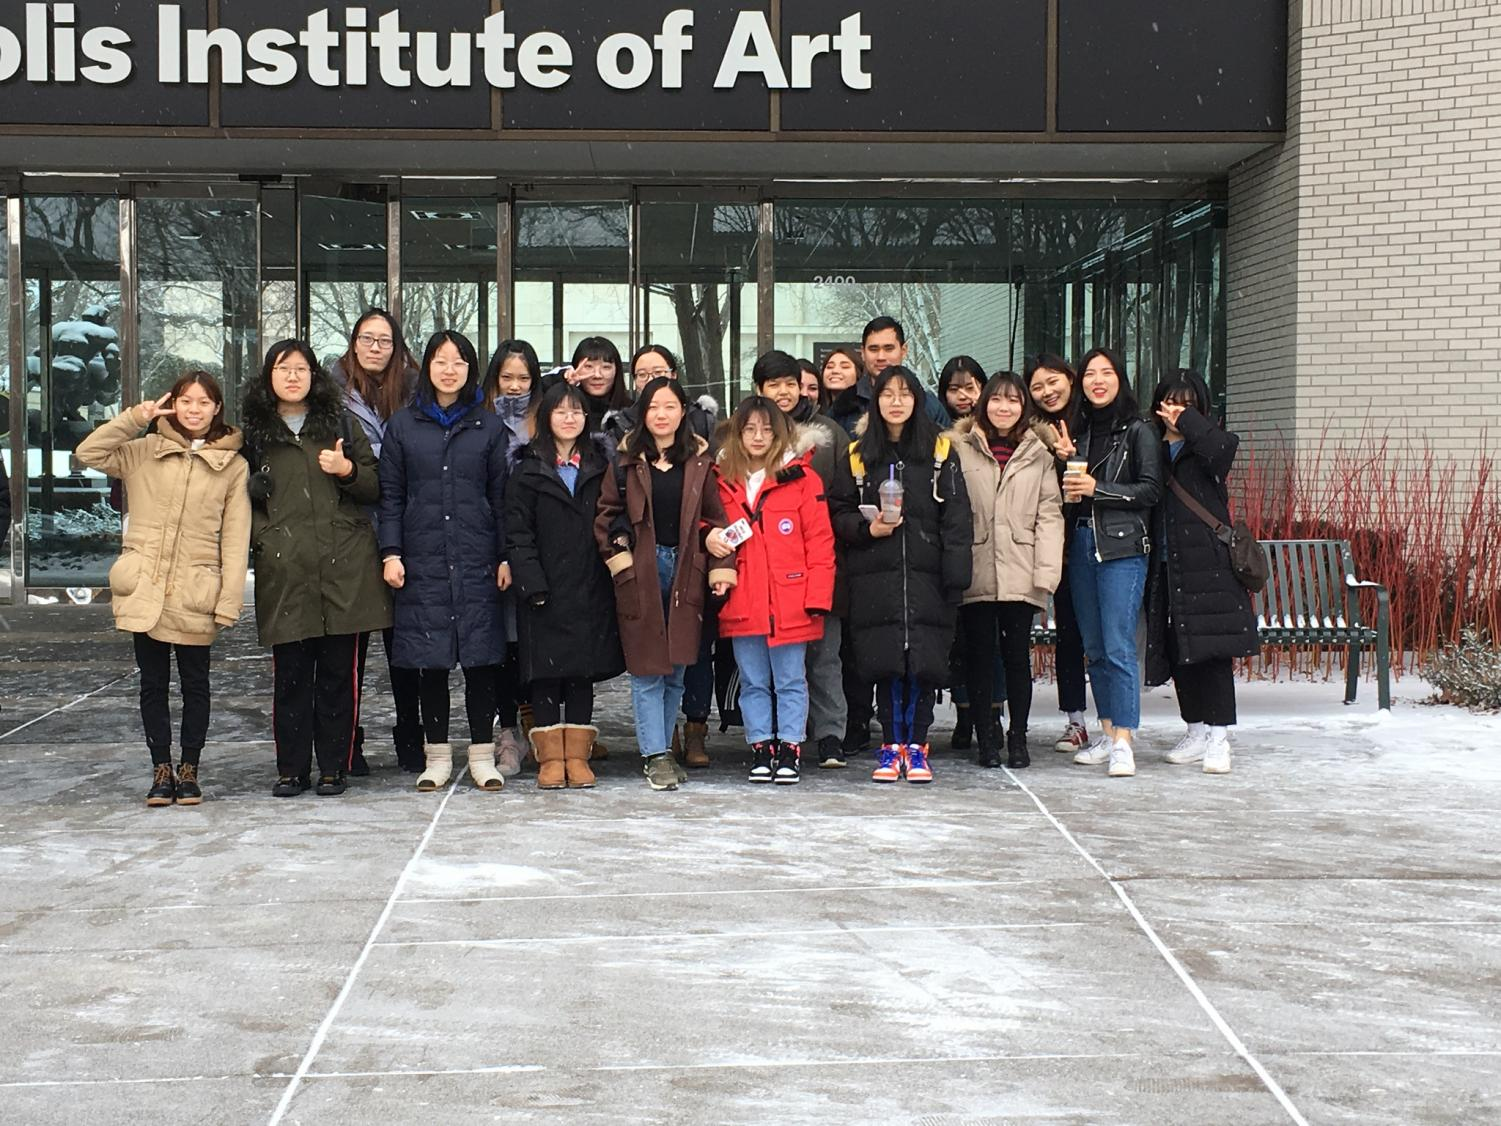 Students from Winona State University's English Language Program visit Minneapolis Institute of Art on Saturday, January 26. The group was in Minneapolis for the annual International Food and Art Festival.